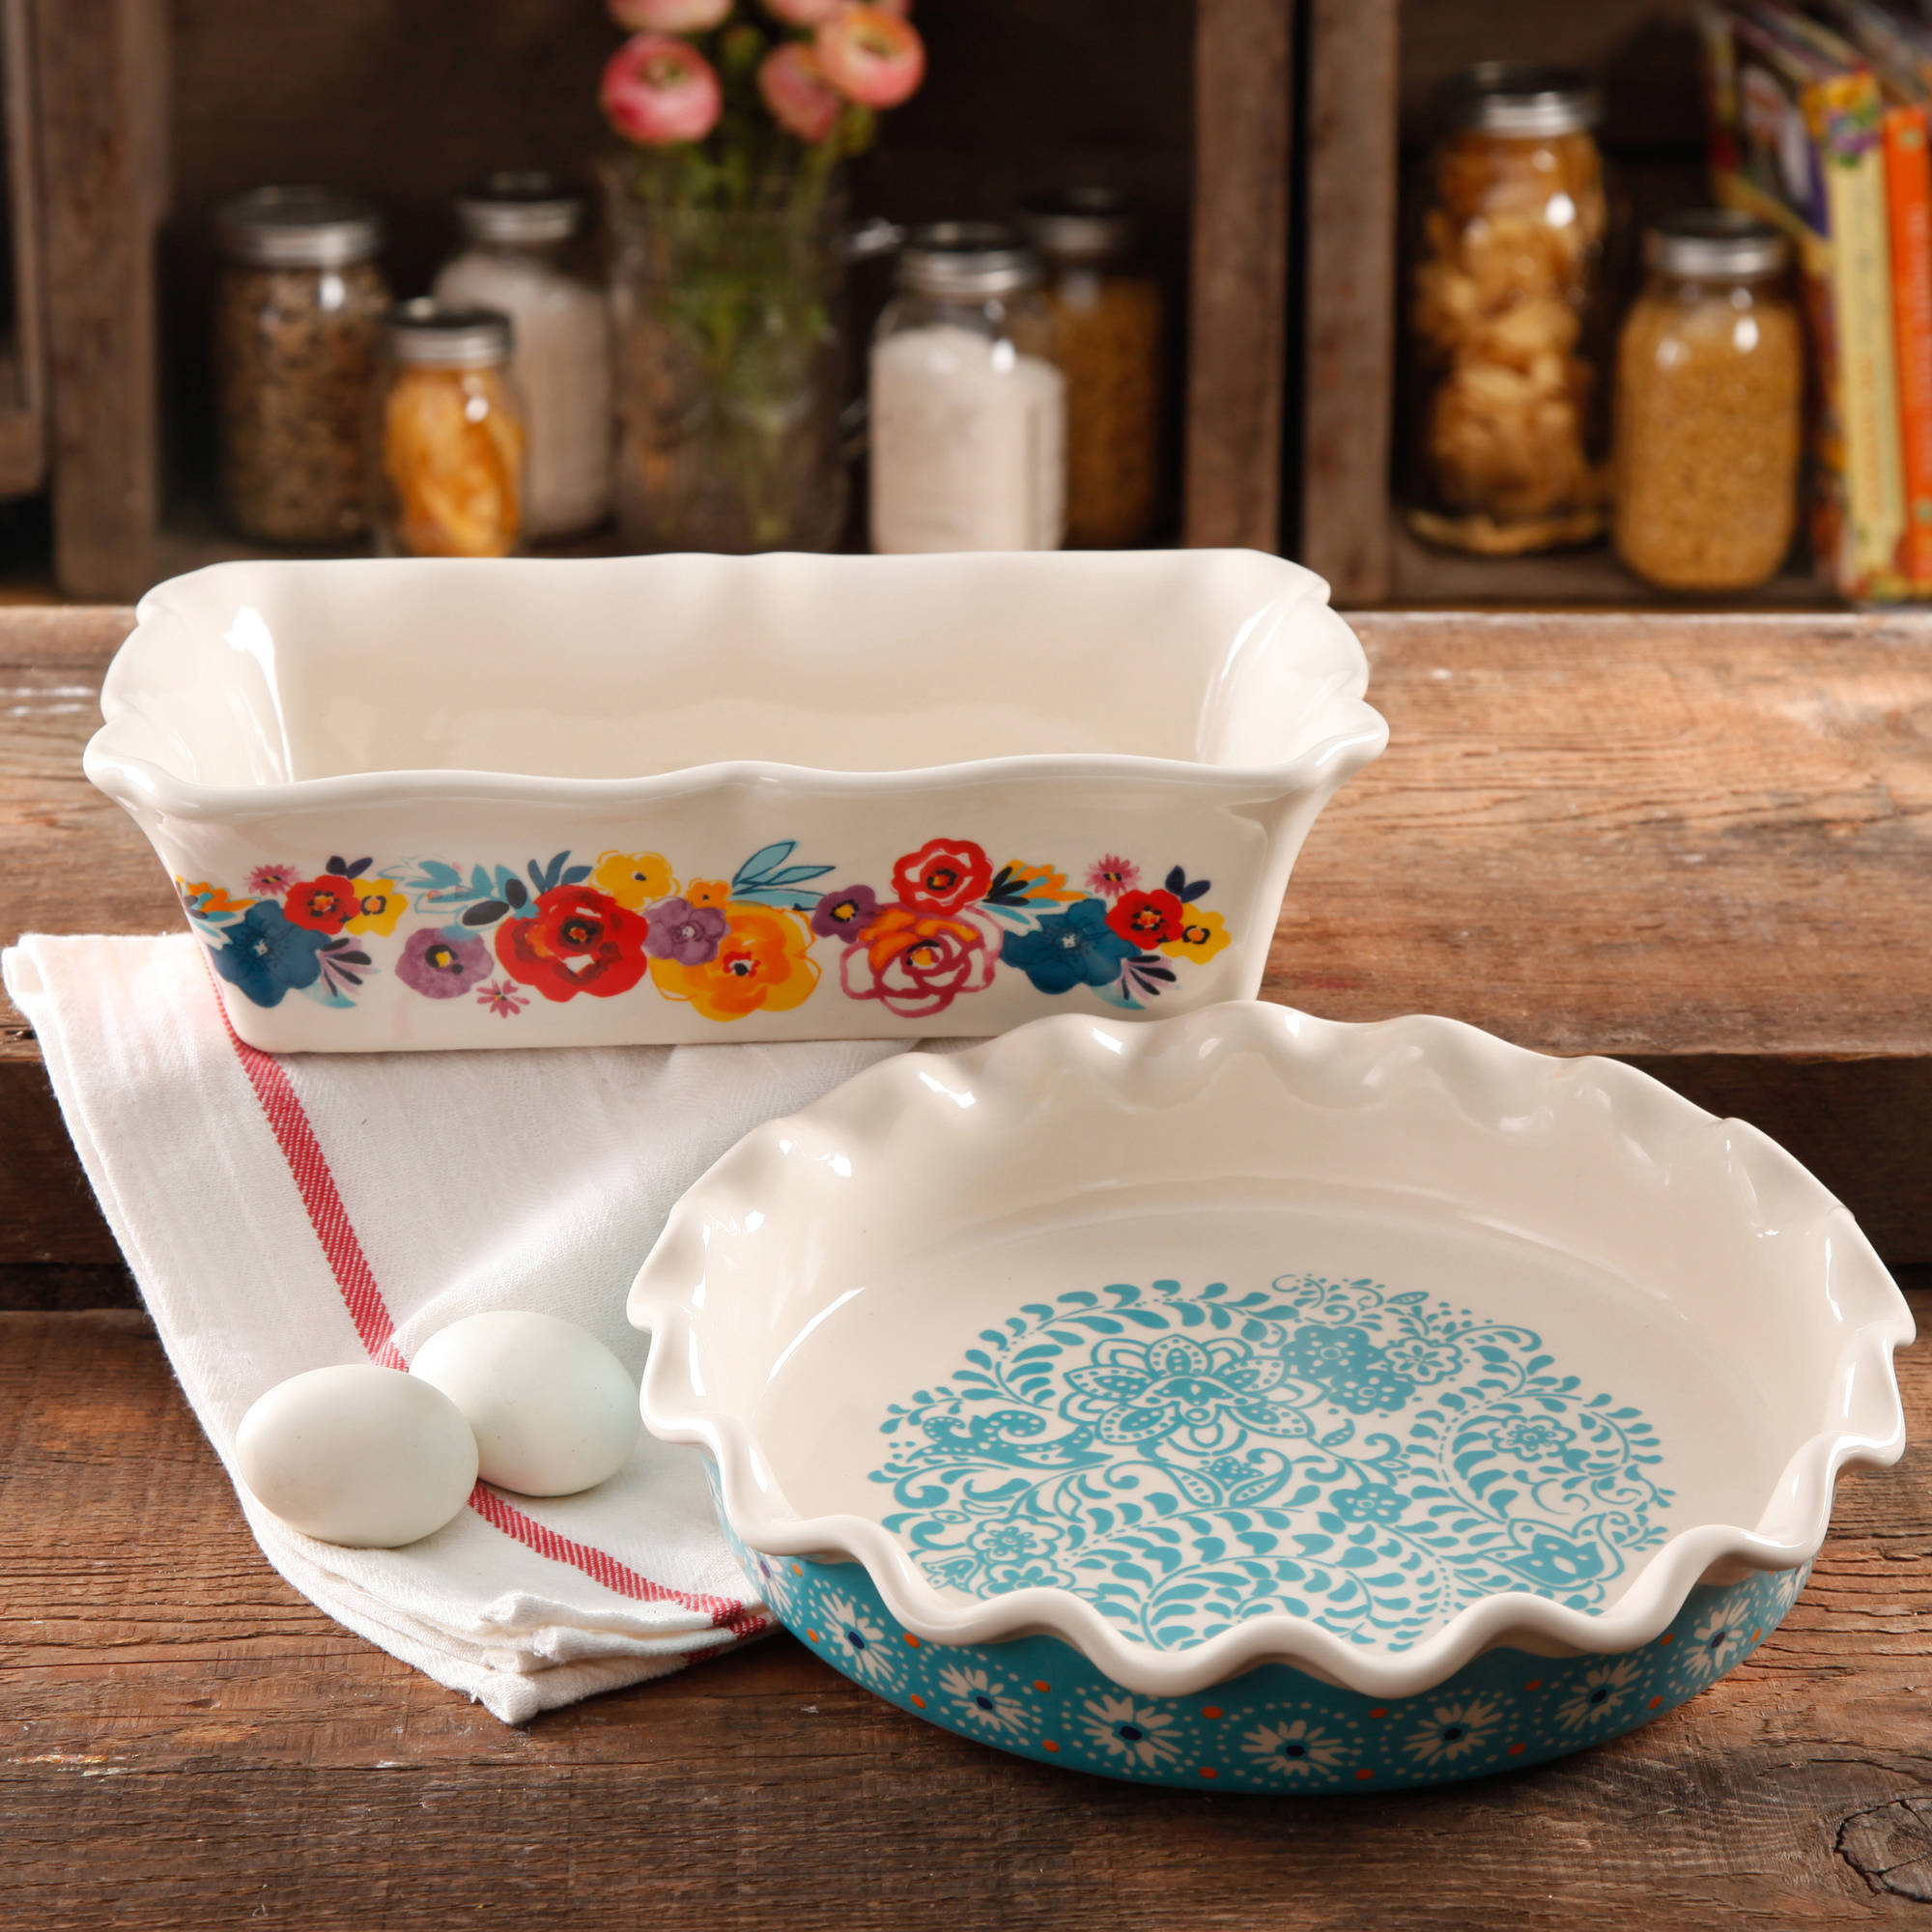 "The Pioneer Woman Flea Market Decorated 9"" Ruffle Top Pie Plate and 2.3-Quart Ruffle Top Bakeware"